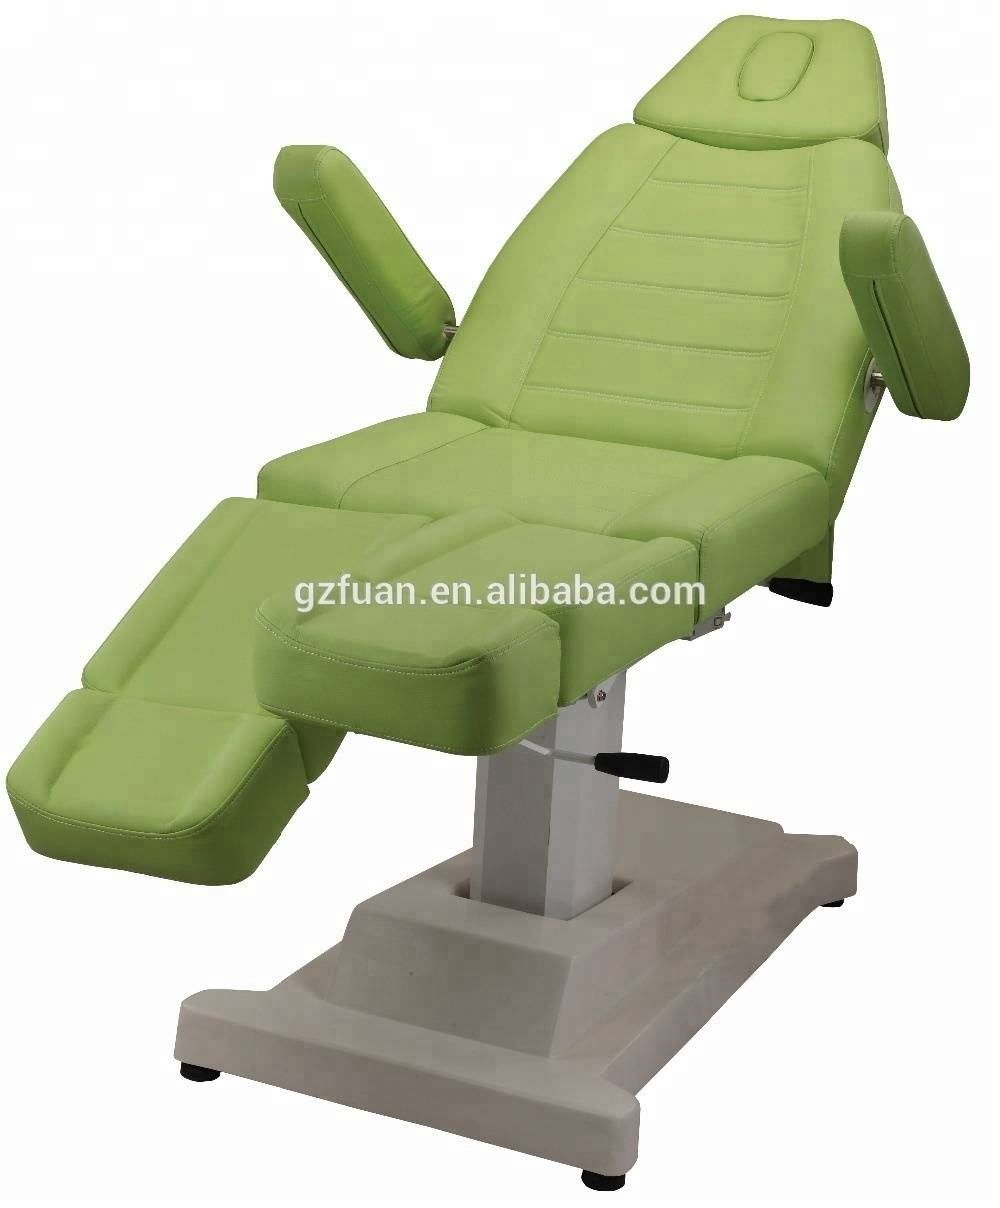 Modern luxury flexible beauty salon furniture spa massage table hydraulic wholesalers electric facial bed for sale